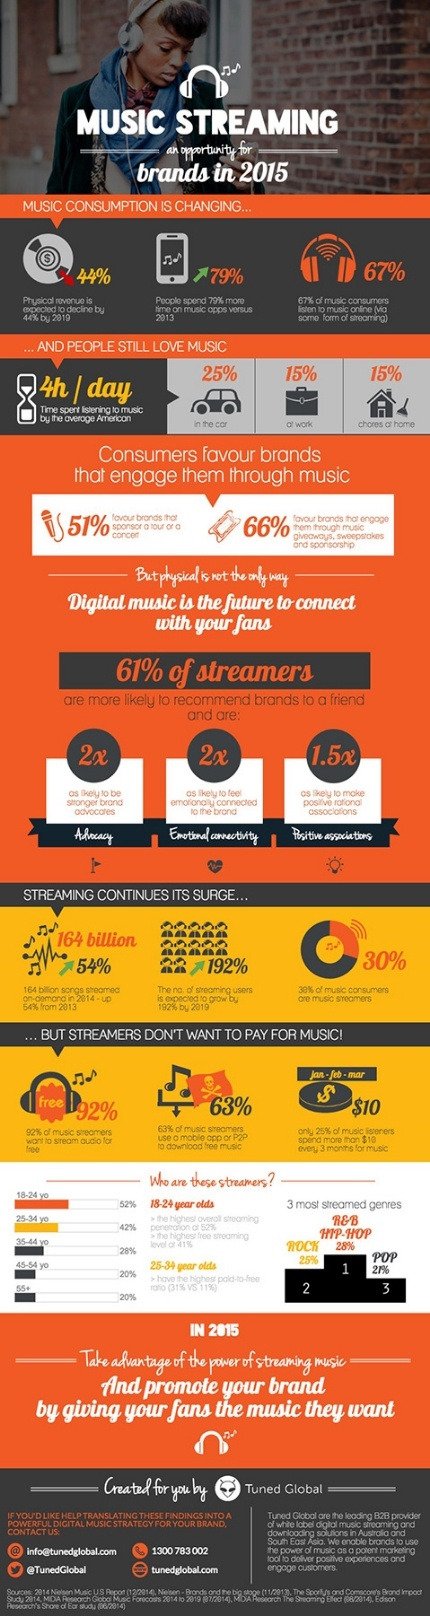 """Tuned Global's infographic """"Streaming is an opportunity for brands"""